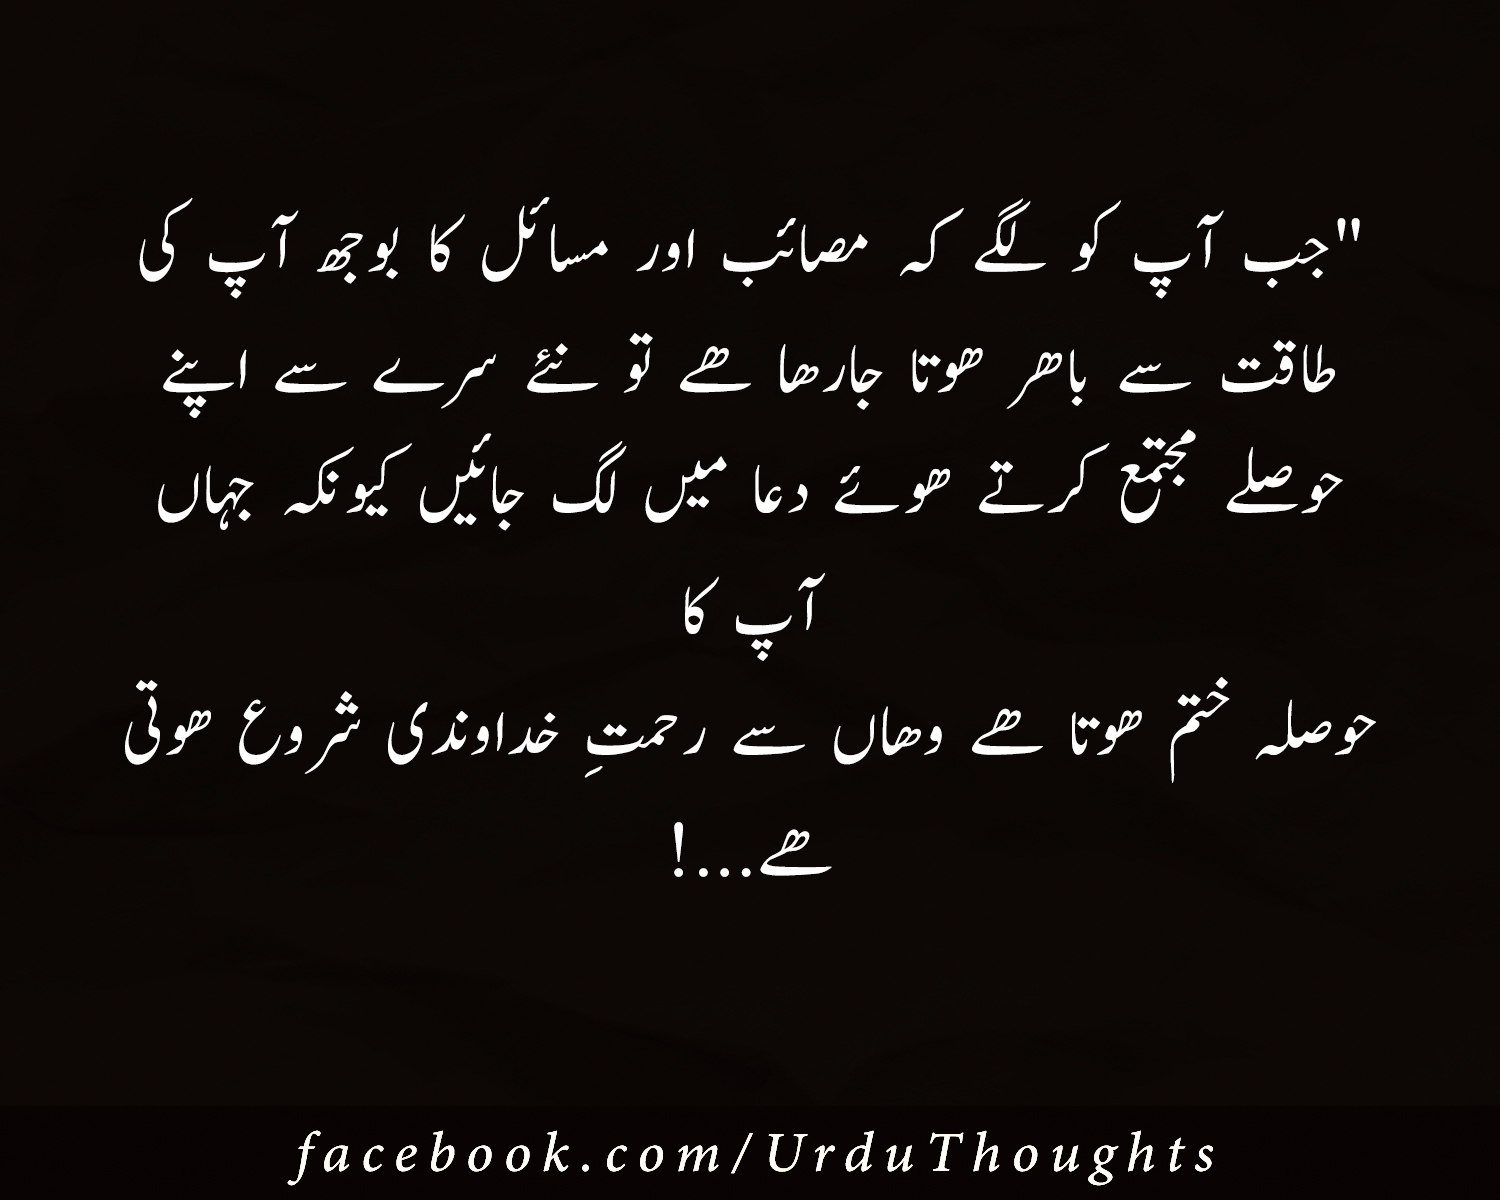 20 Famous Urdu Quotes With Black Background - Urdu Thoughts